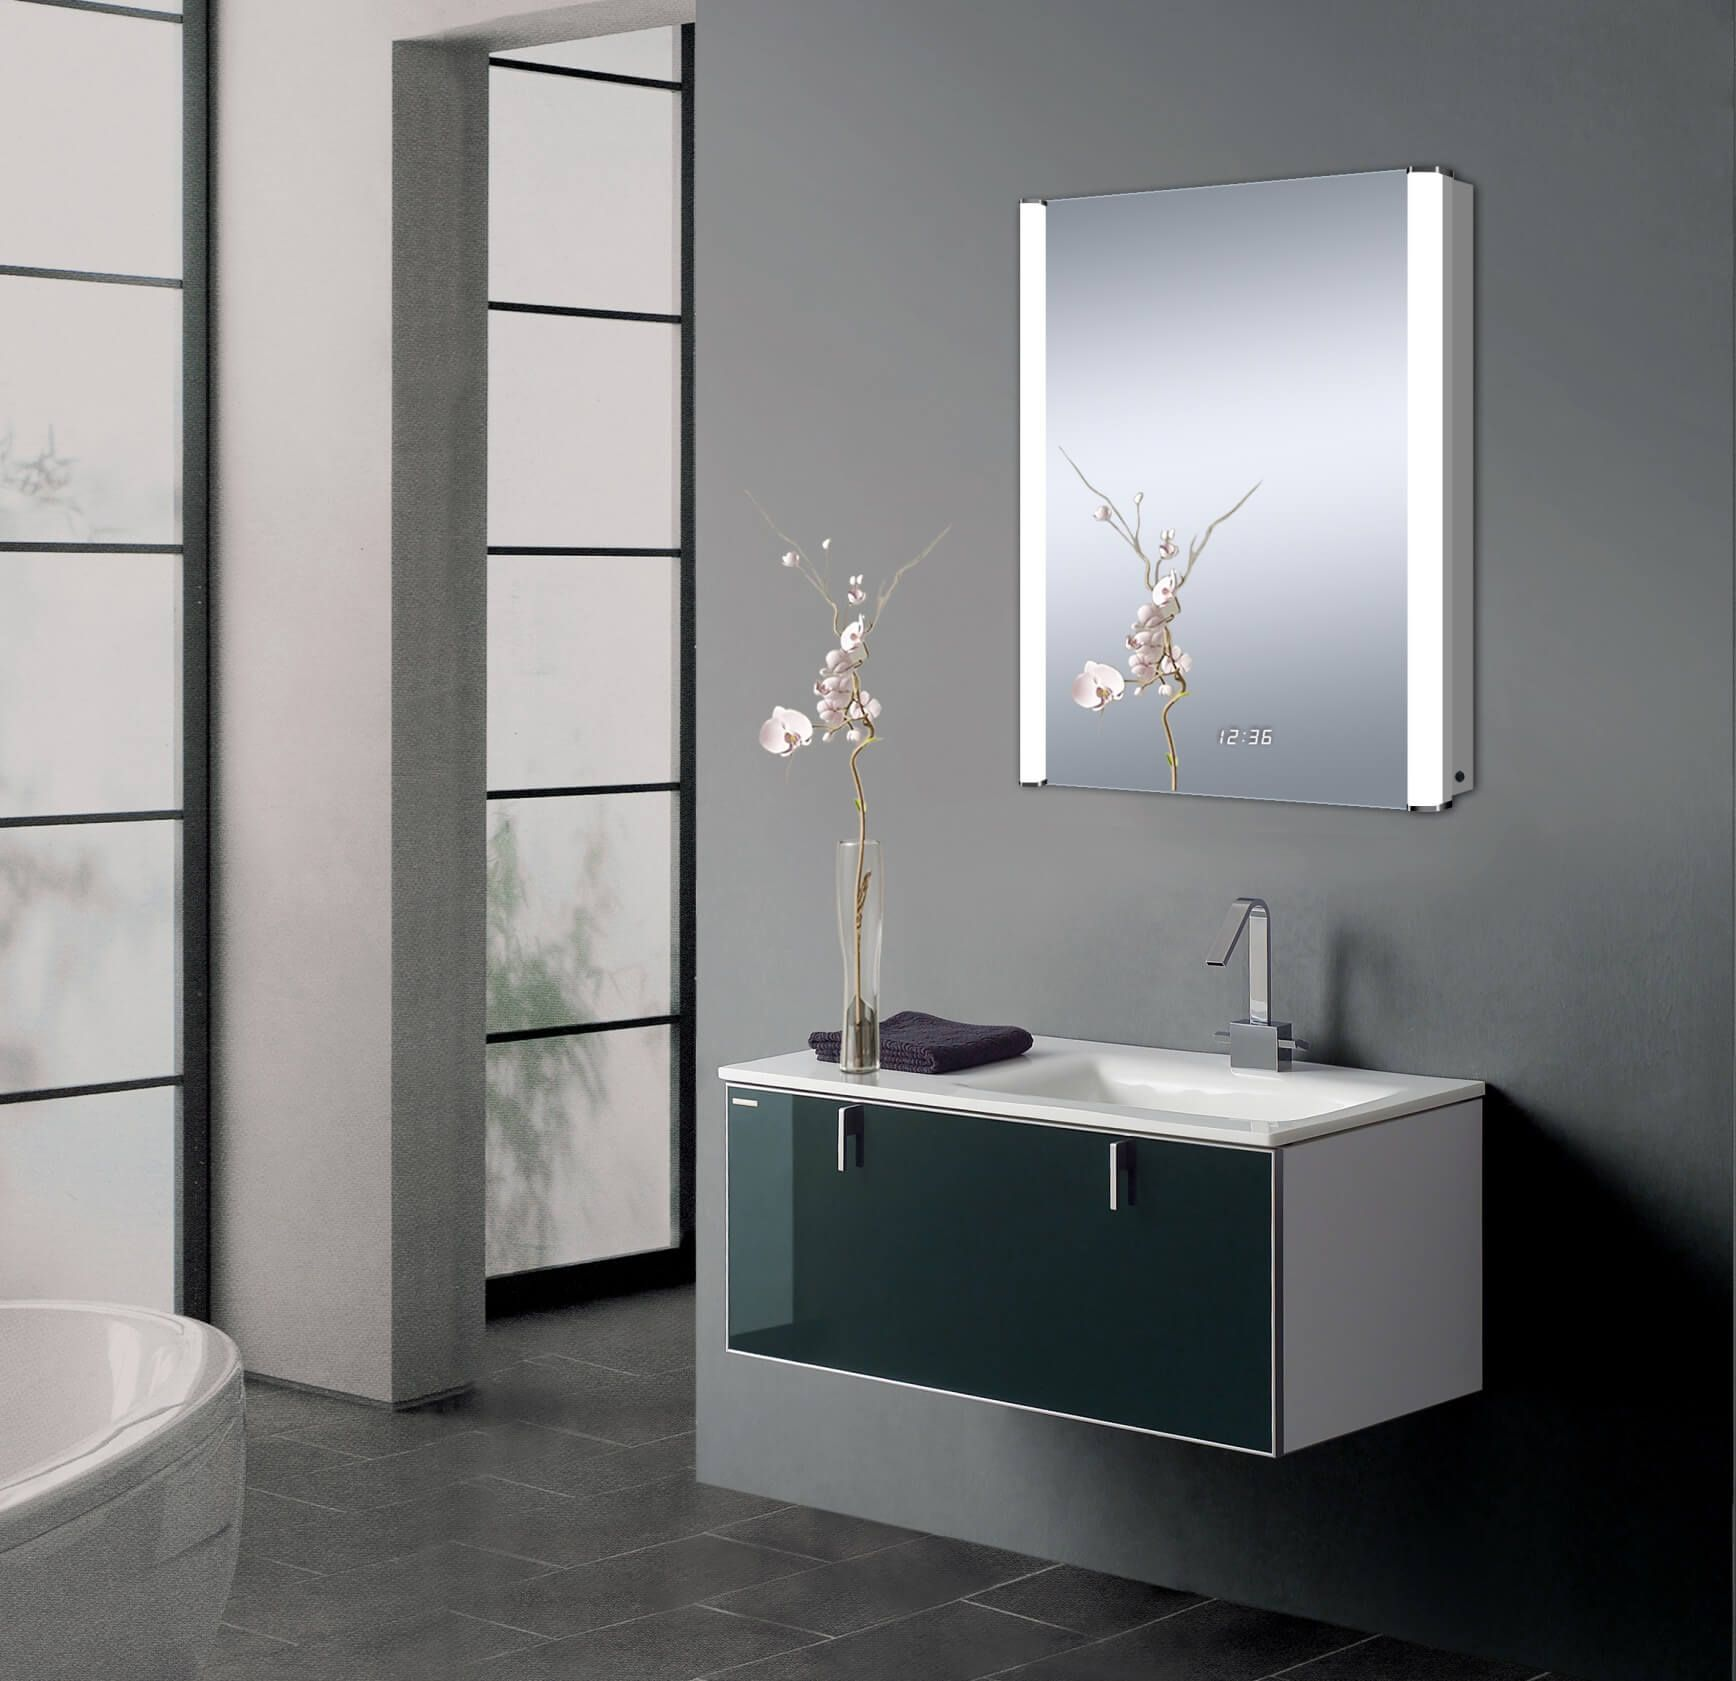 This Modern And Sleek Led Wall Mounted Medicine Cabinet Has A Ton Of Impressive Features Glass Shelves In Bathroom Glass Shelves Wall Mounted Medicine Cabinet